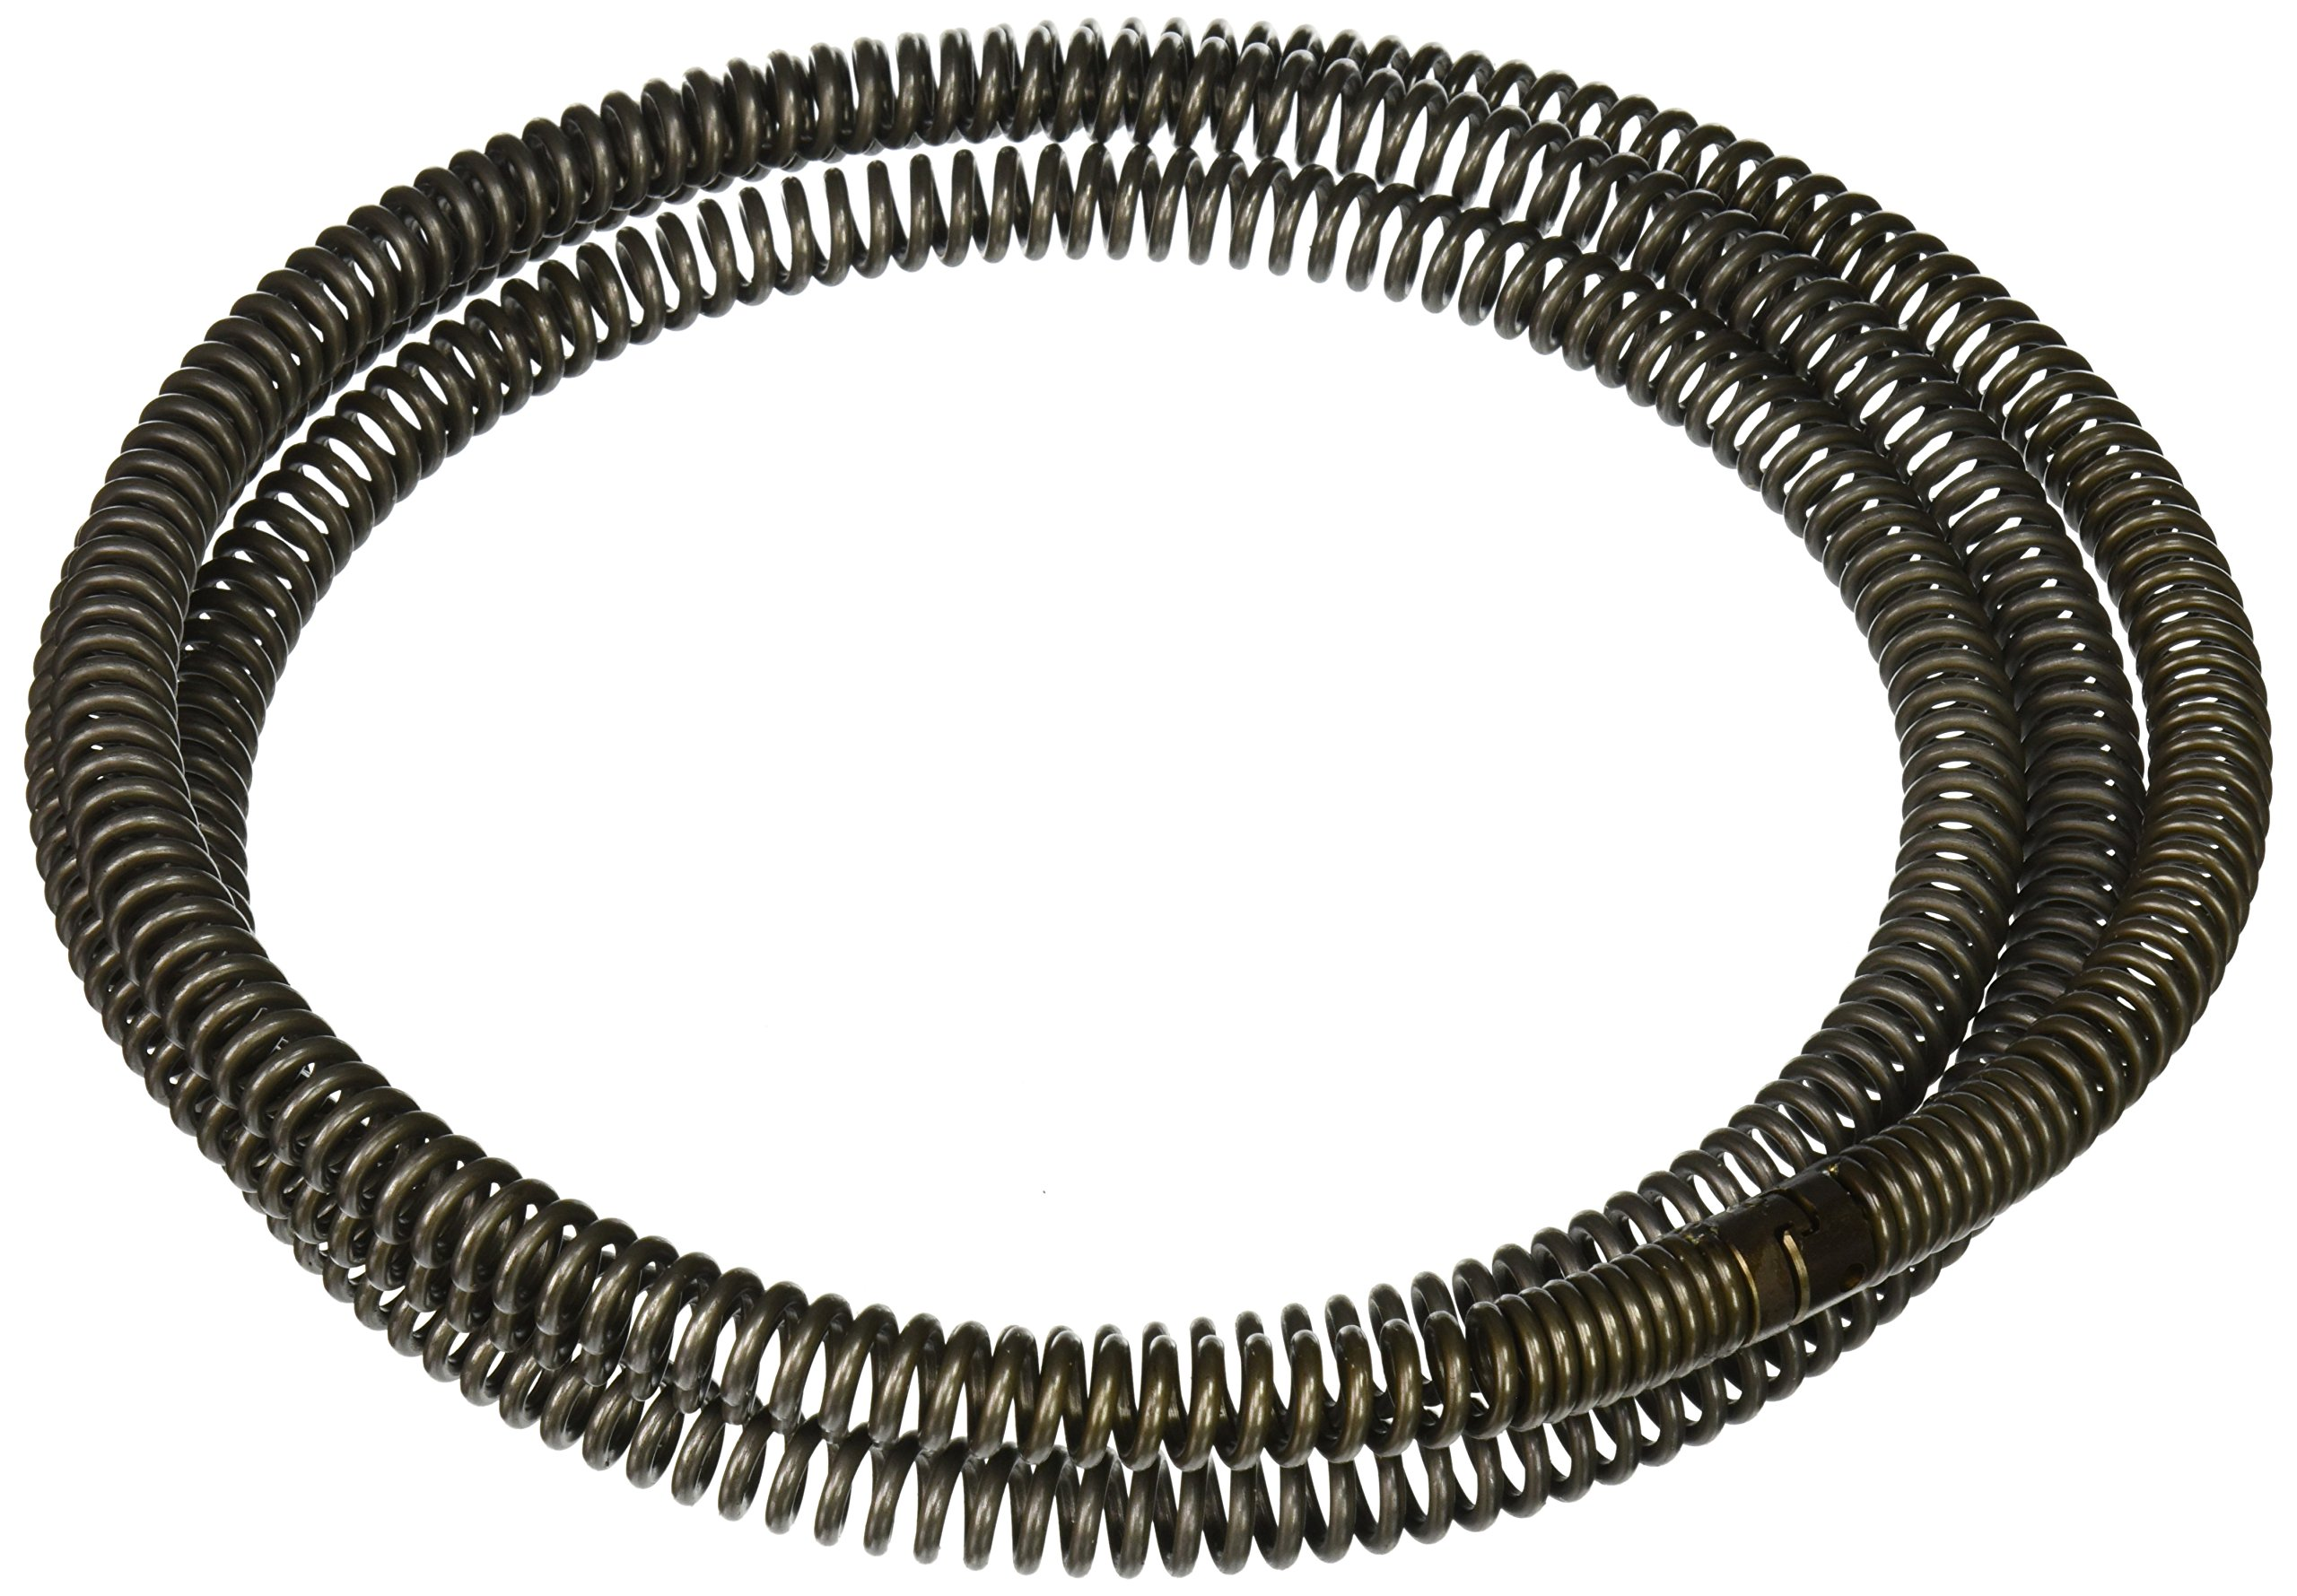 Ridgid 62270 C-8 Sink Sectional Cables, Drain Cleaning Cables for Sectional Machines such as K-60SP and K-50, 5/8-Inch Sectional Drain Cleaner Cable, Black